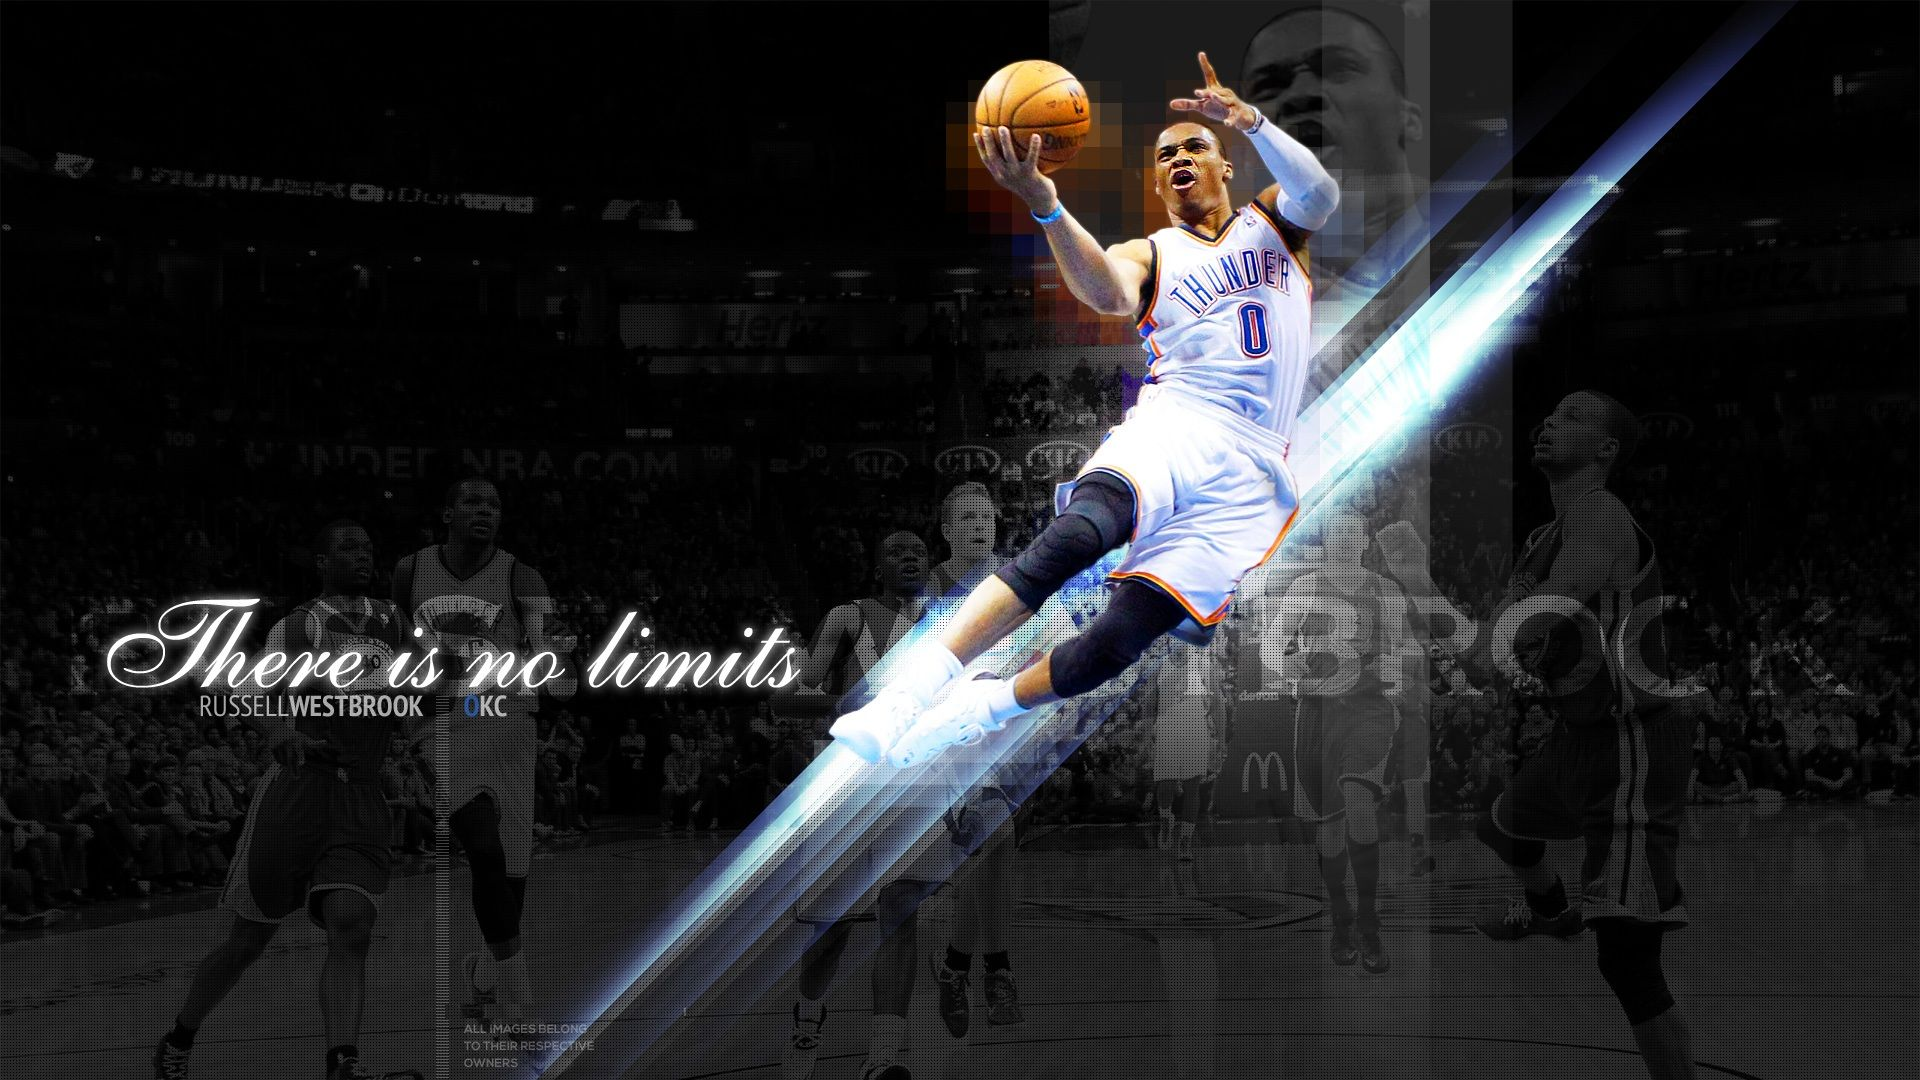 Pin by Benita Lopez on Wallpapers Russell westbrook